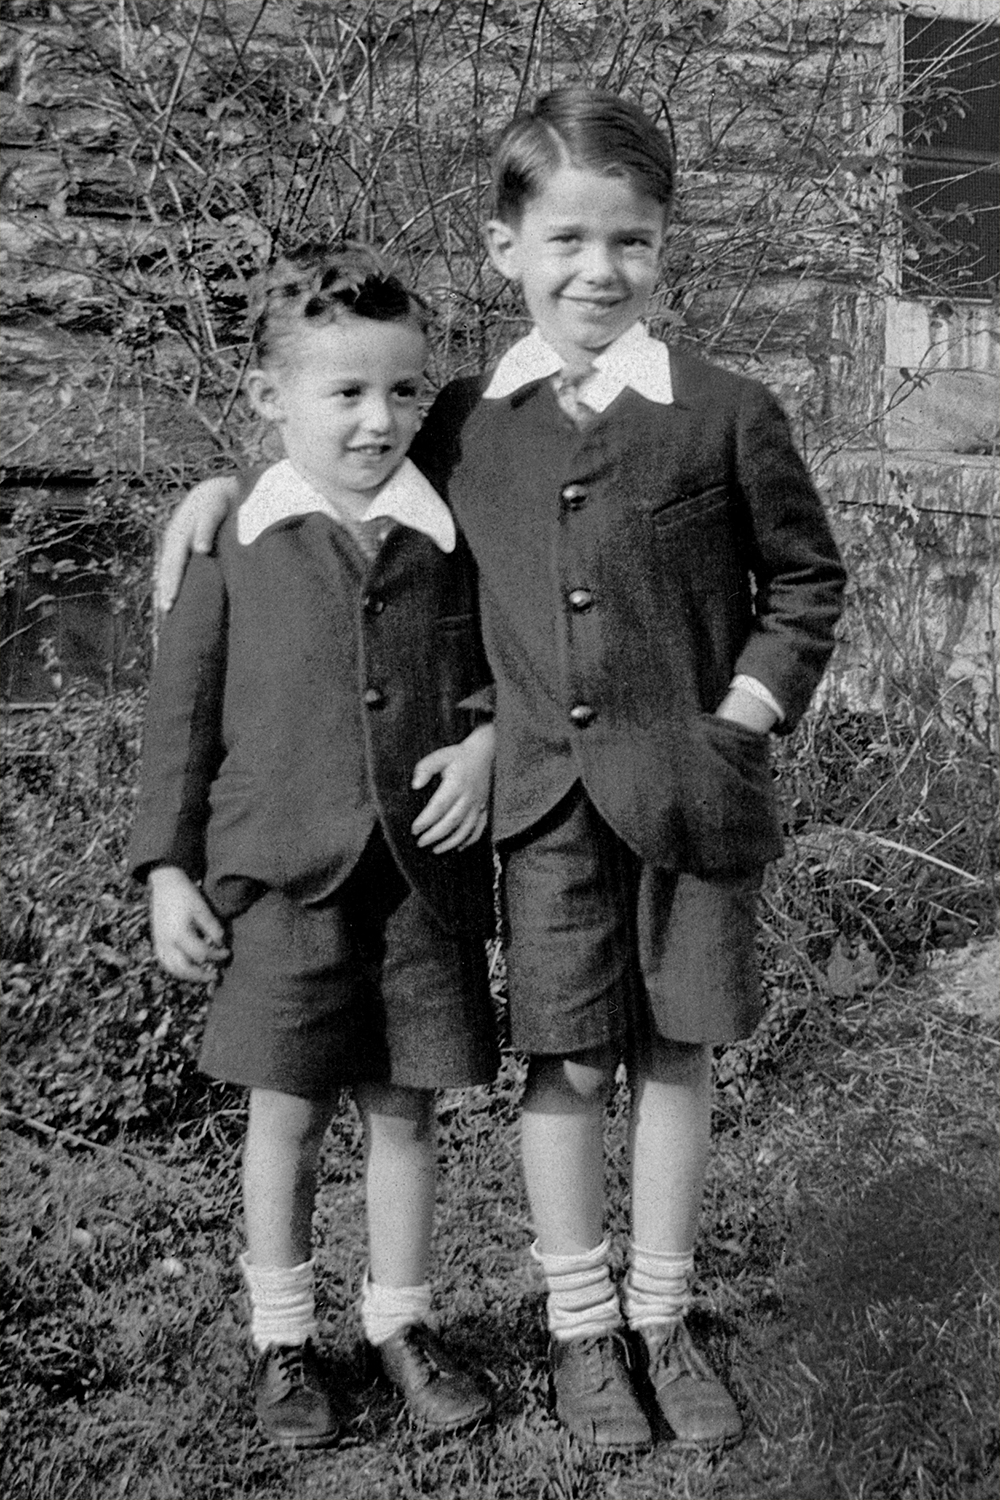 Richard and Buddy, 1932